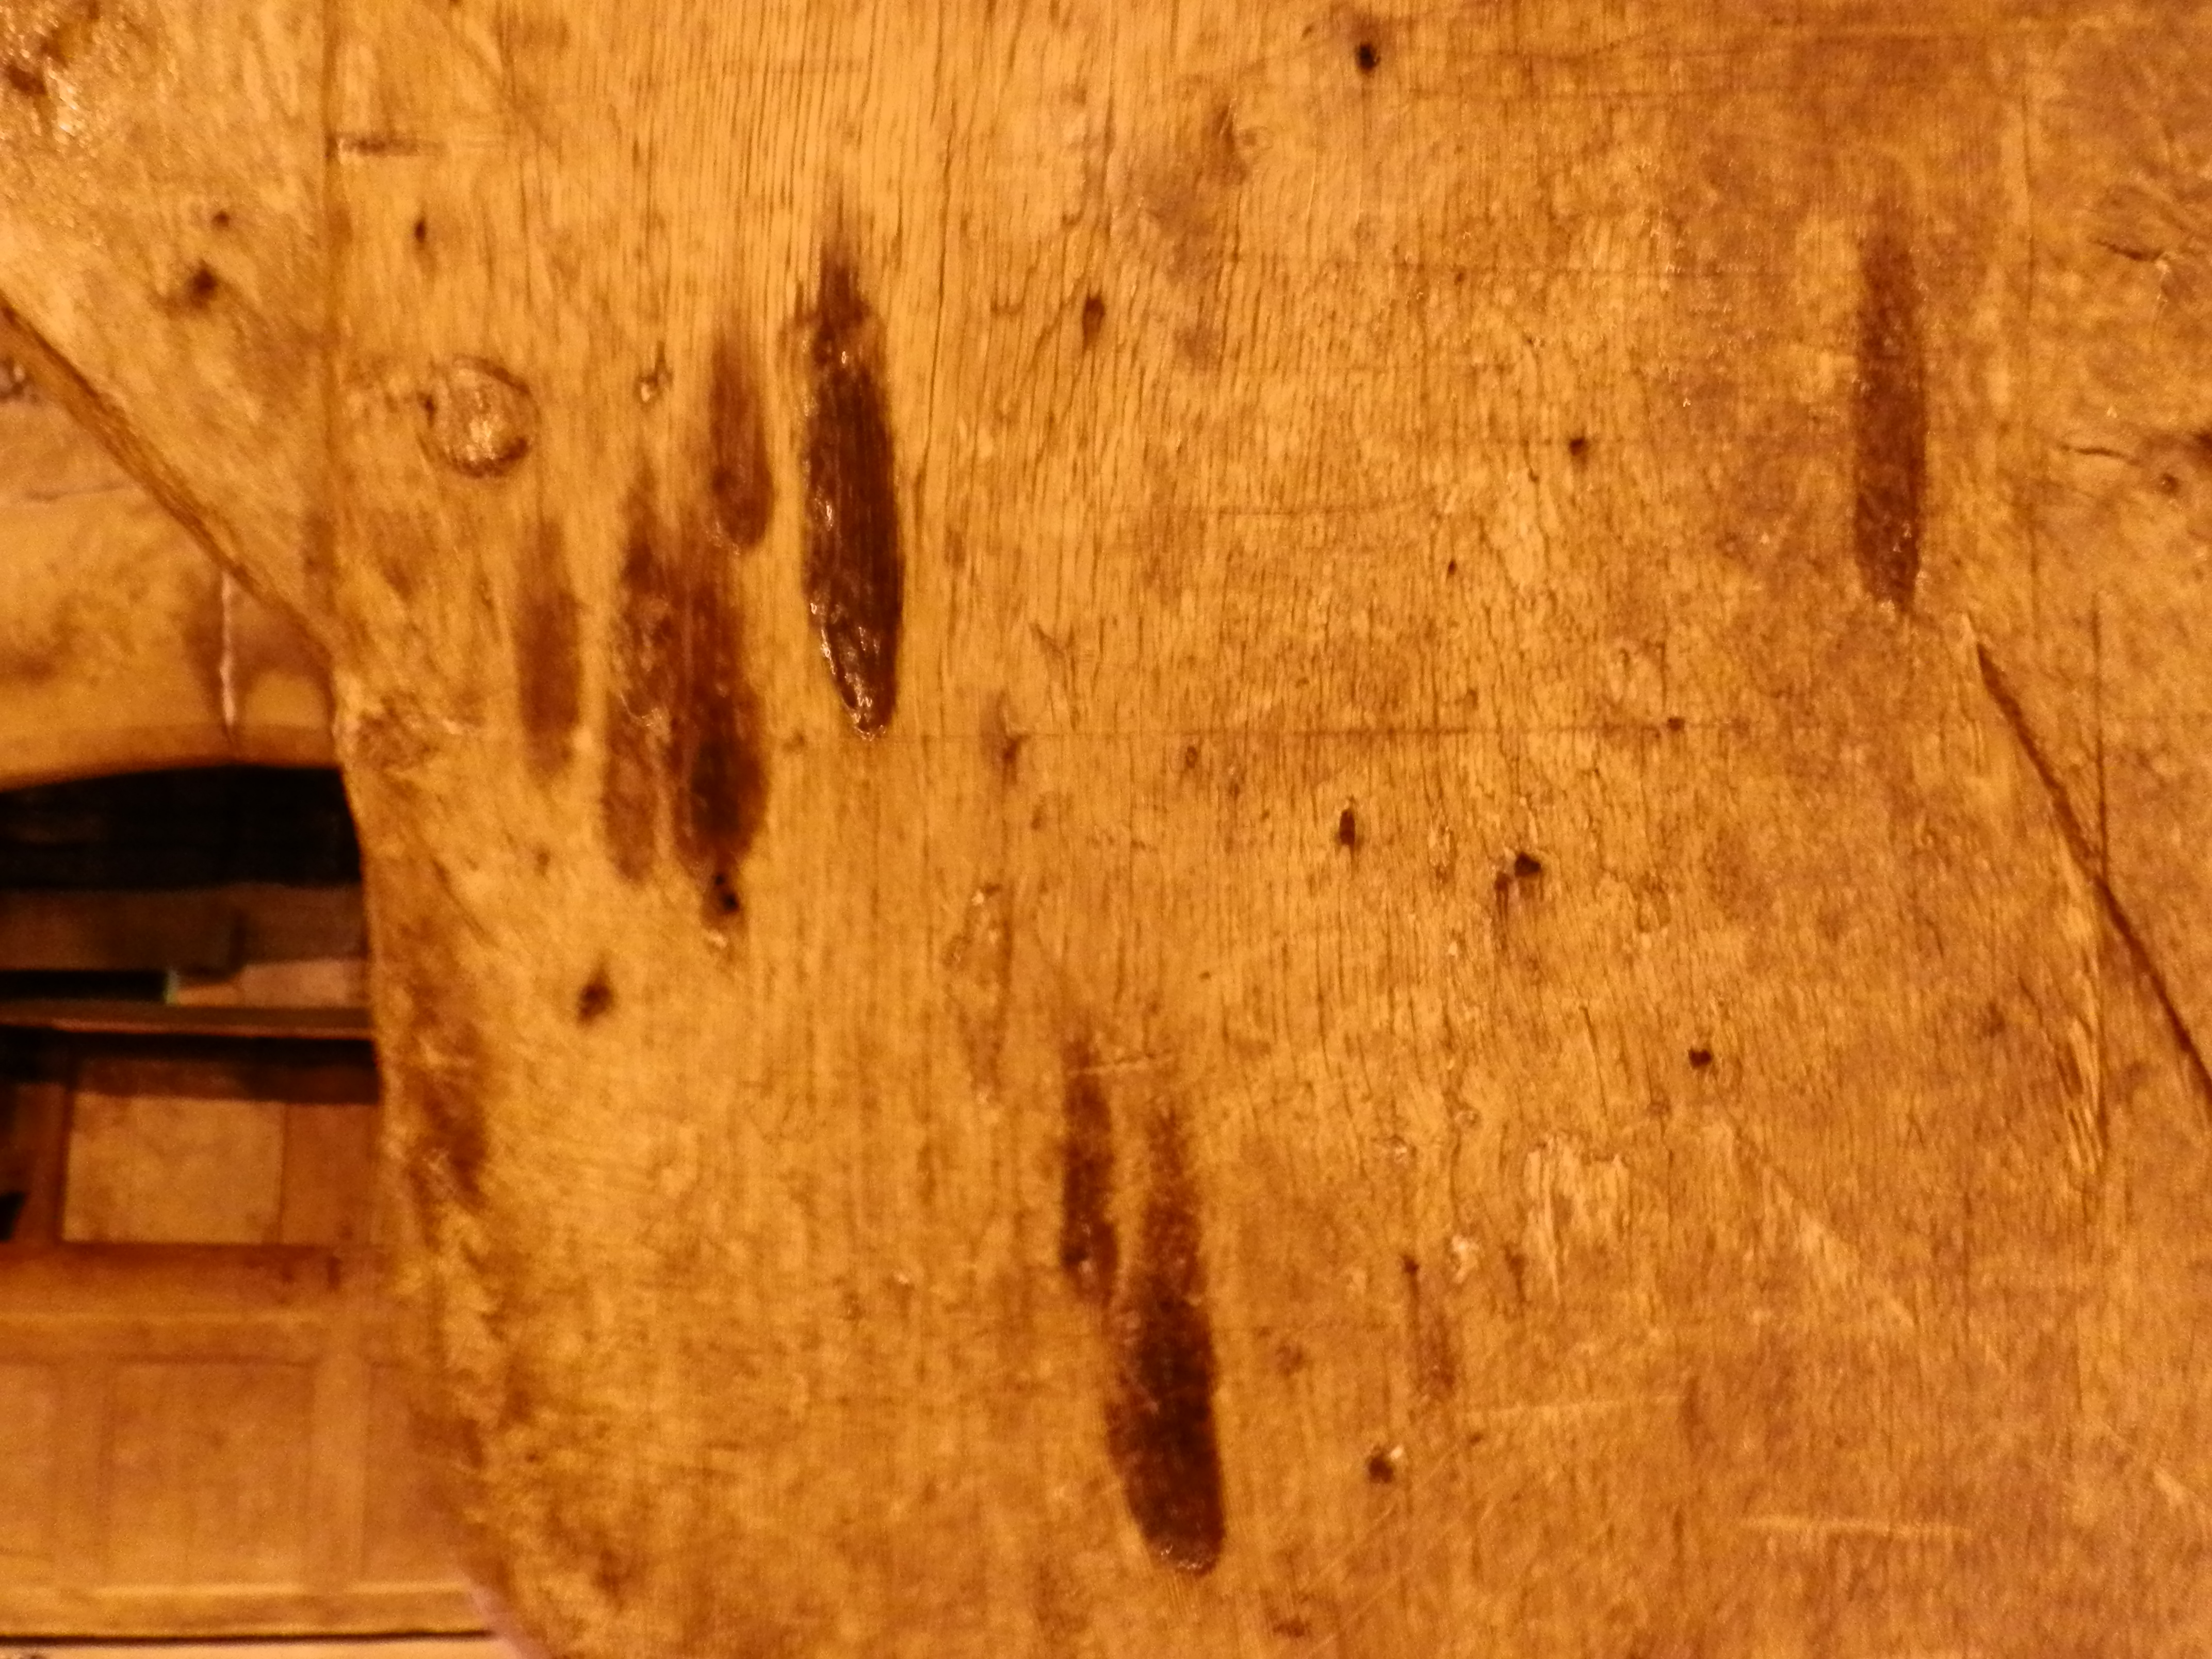 An image of Taper burn marks at Haddon Hall by Delusion23.